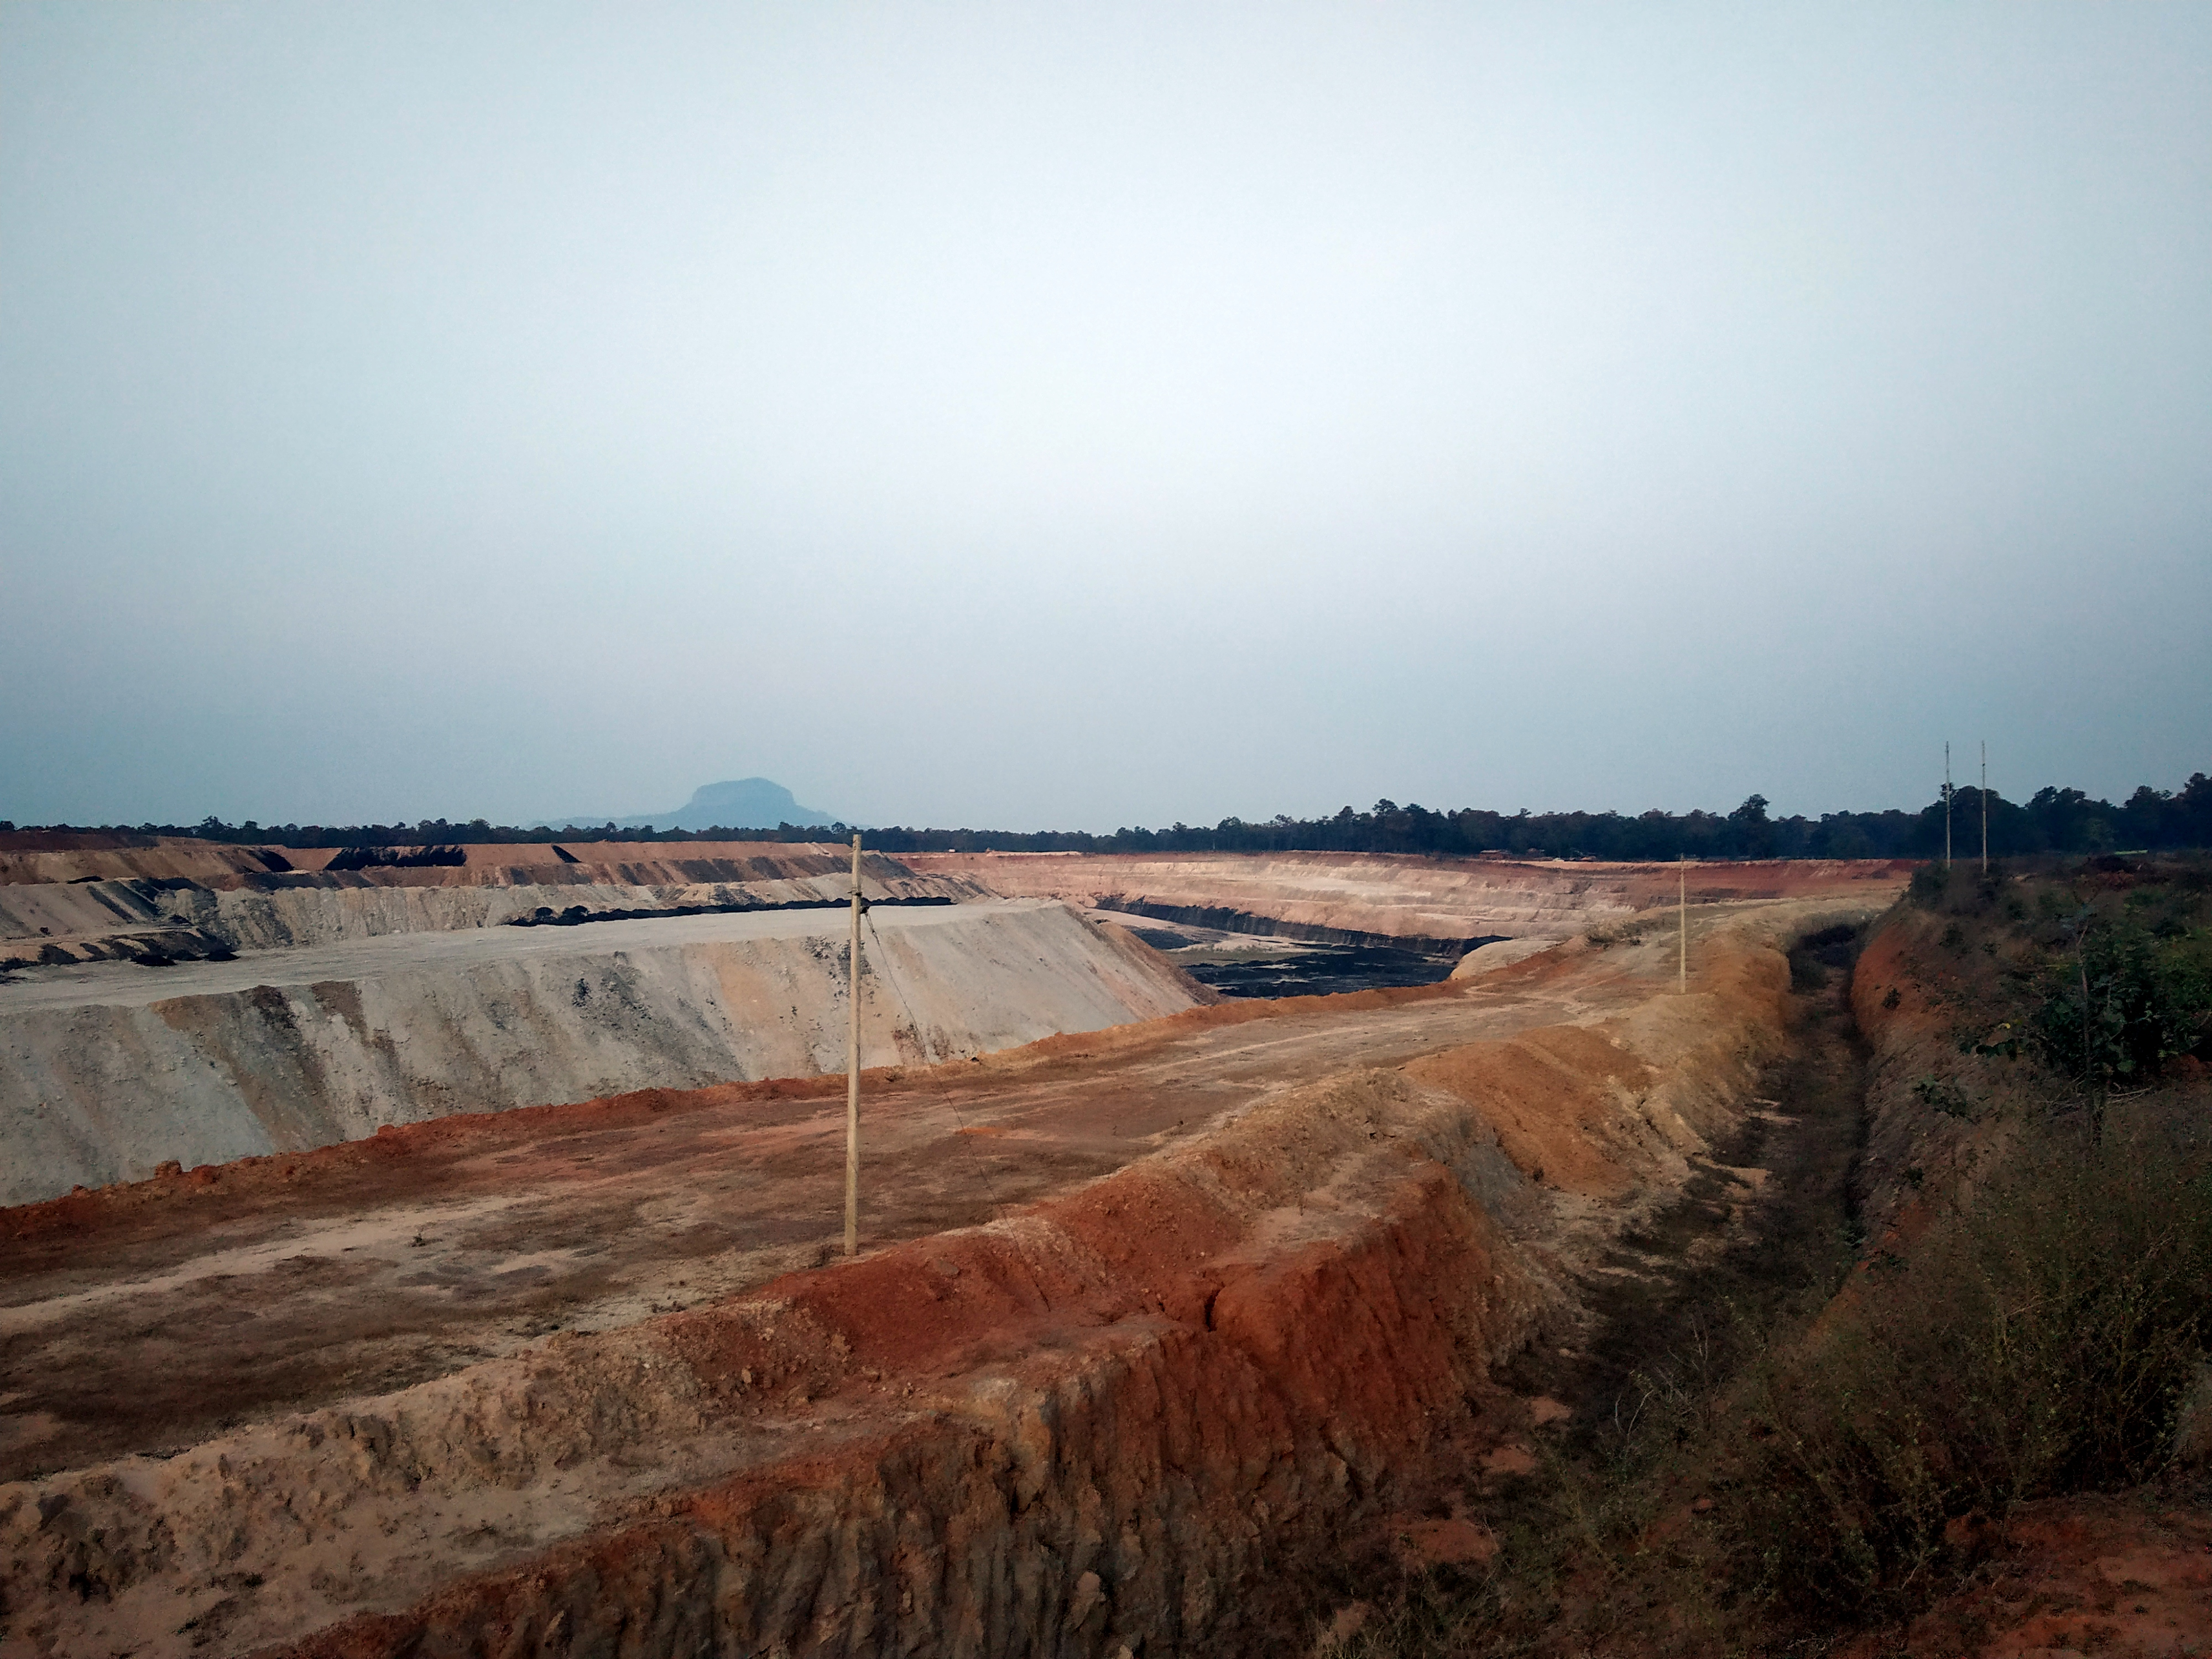 The PEKB coal mine, developed and operated by Adani, in the Hasdeo forests of India.